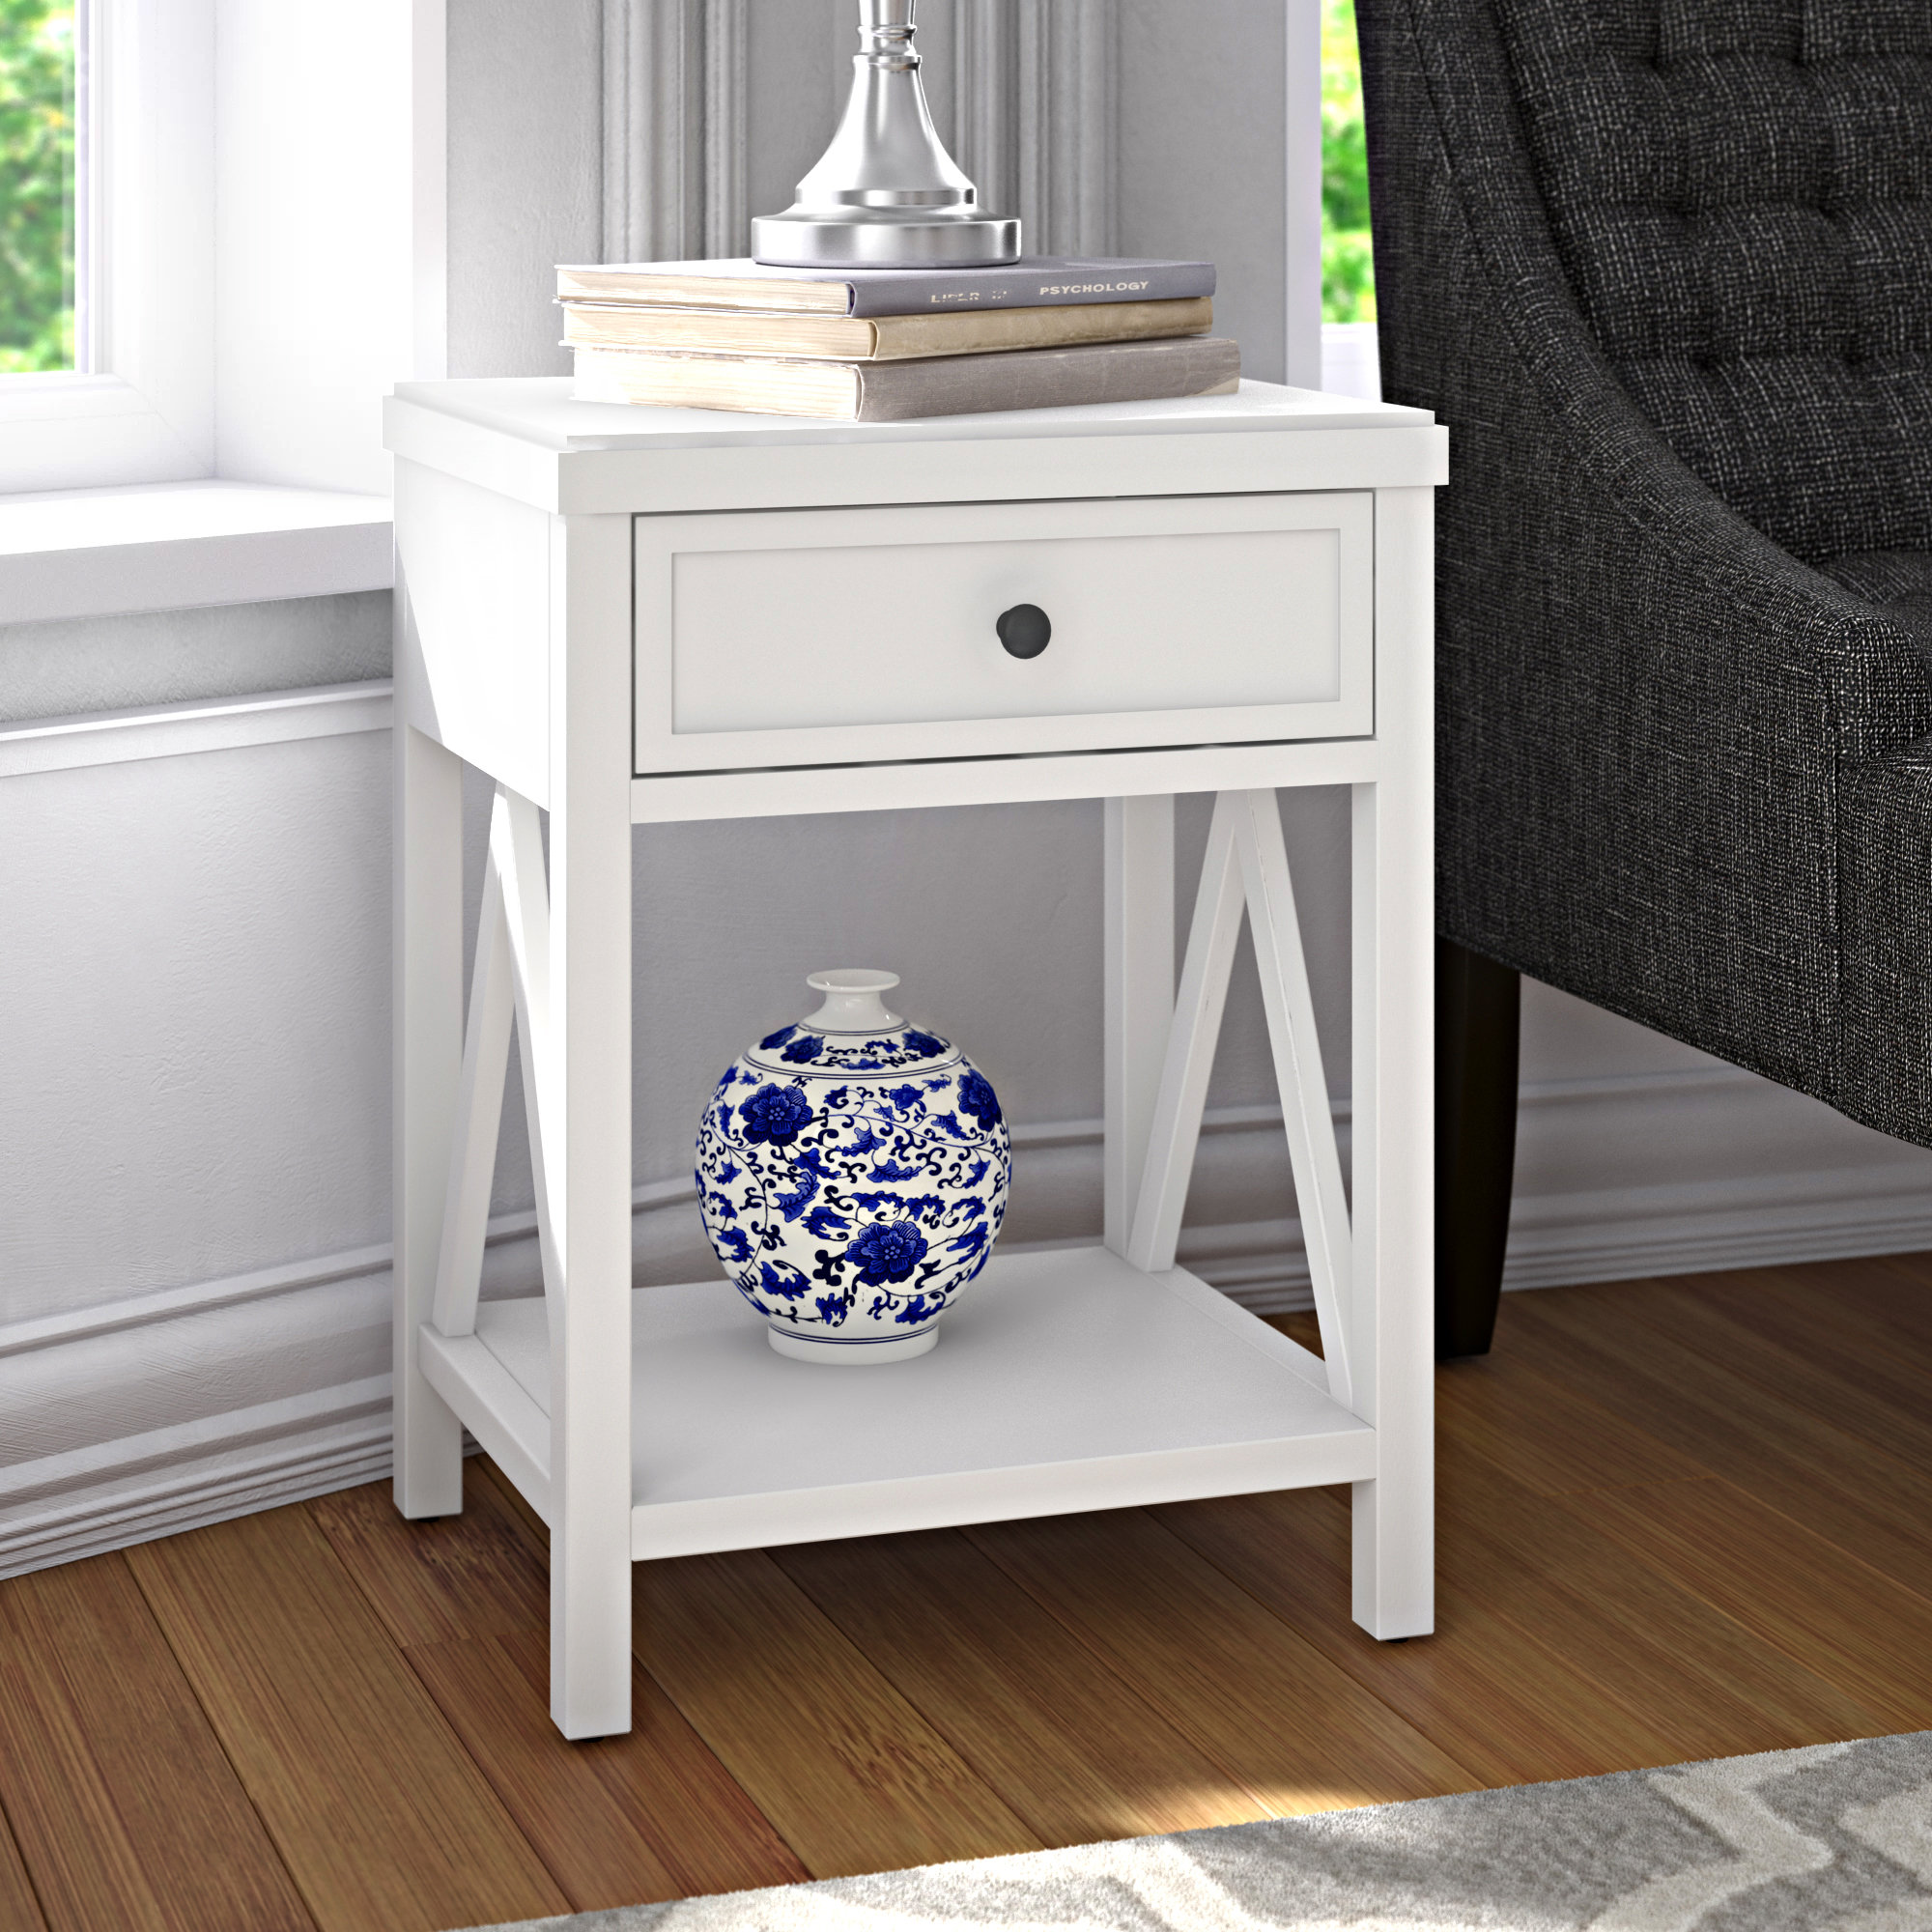 small white accent table laurel end with storage black room essentials quickview cherry wood dining furniture hampton bay patio cushions bombay company pier one lamps world market